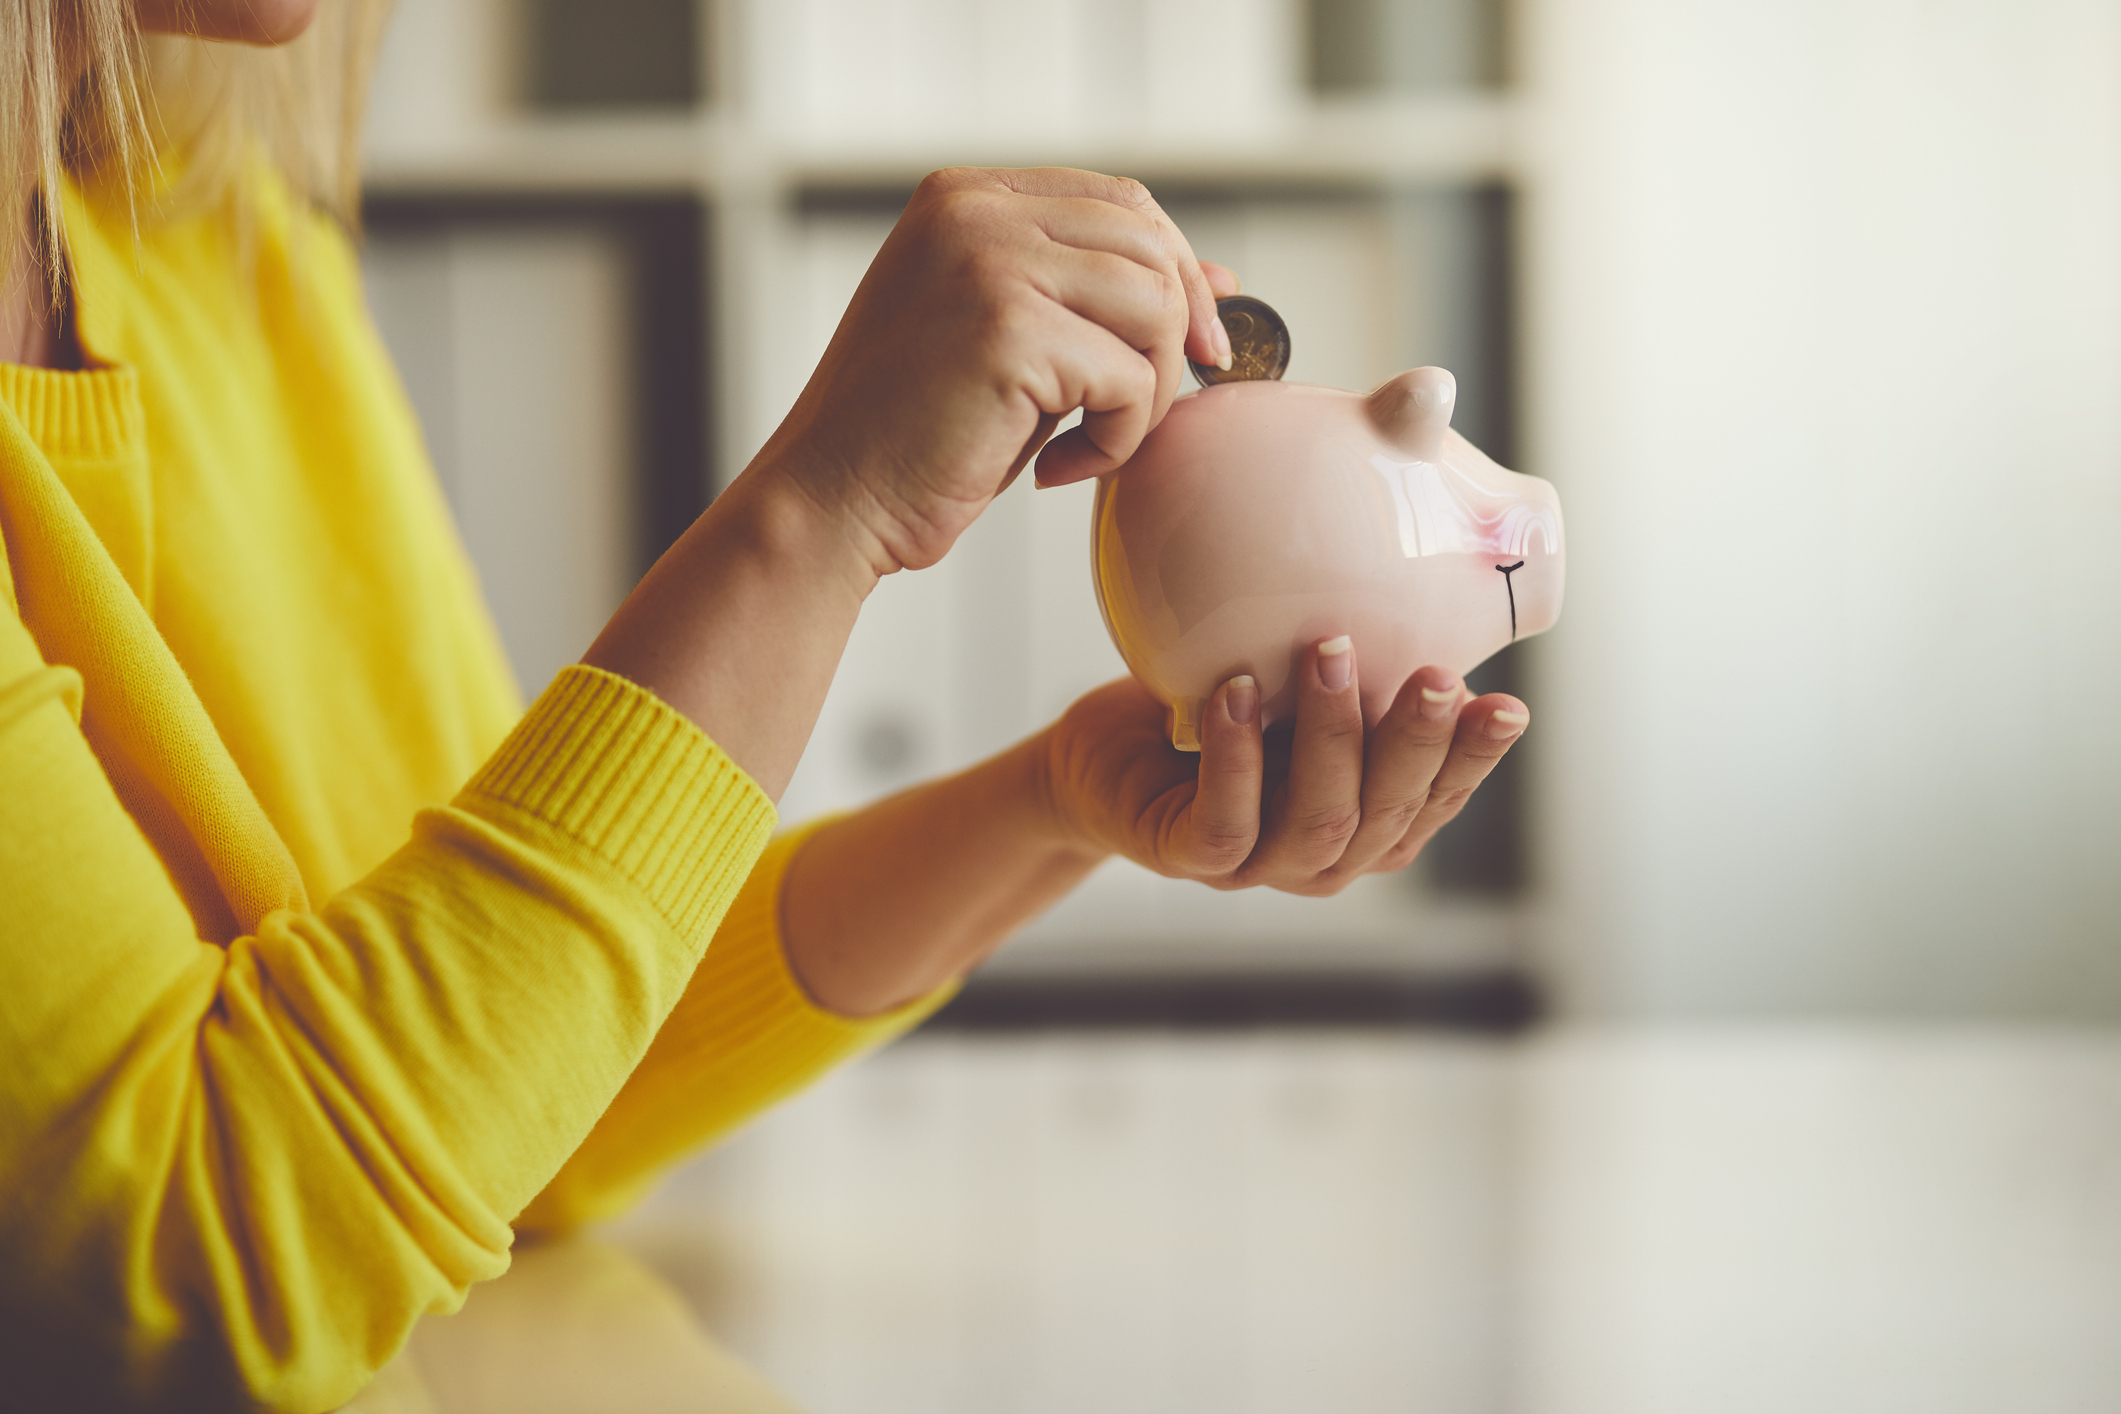 Woman putting coin in piggy bank.